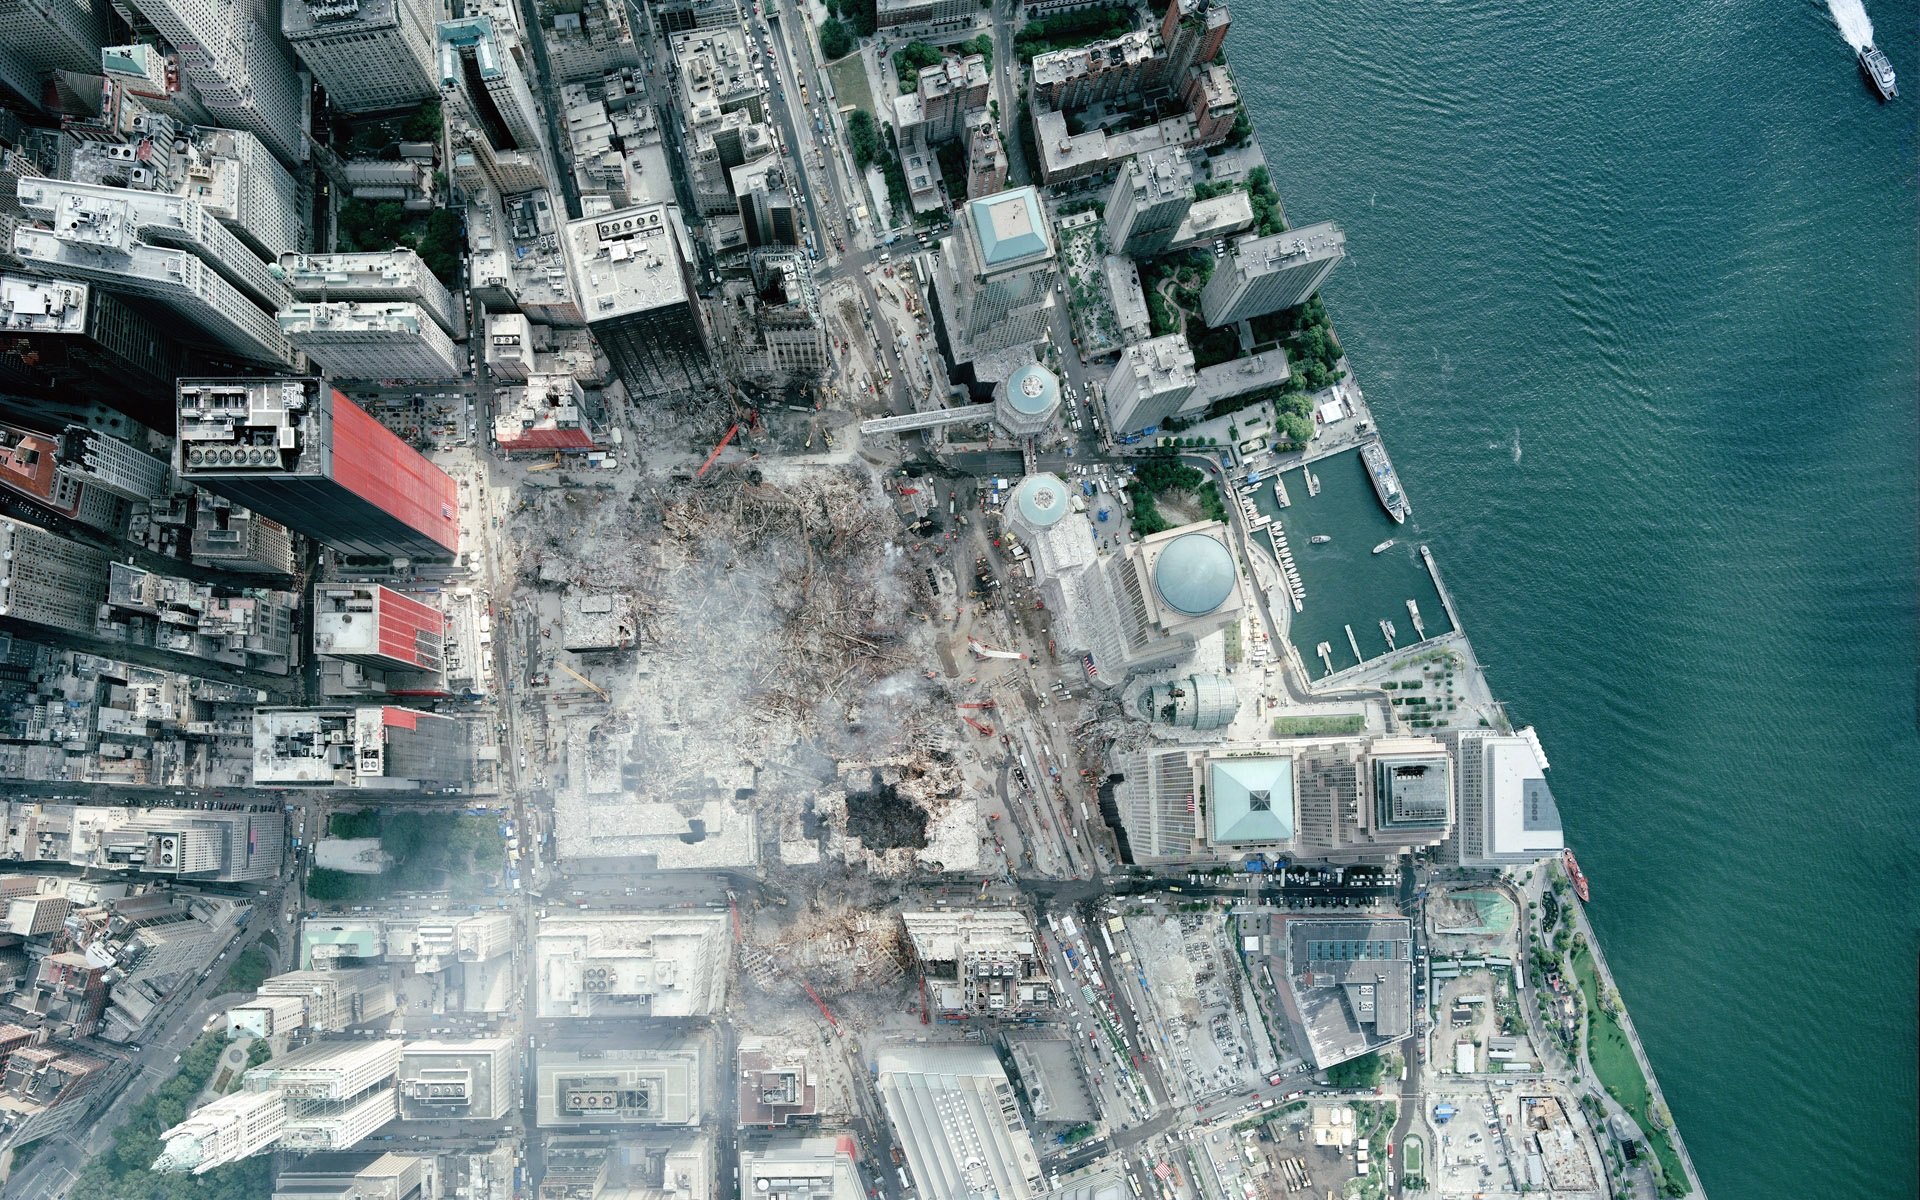 Wallpaper very high definition satellite wtc photo 1920x1200 hd picture image - Satellite wallpaper hd ...